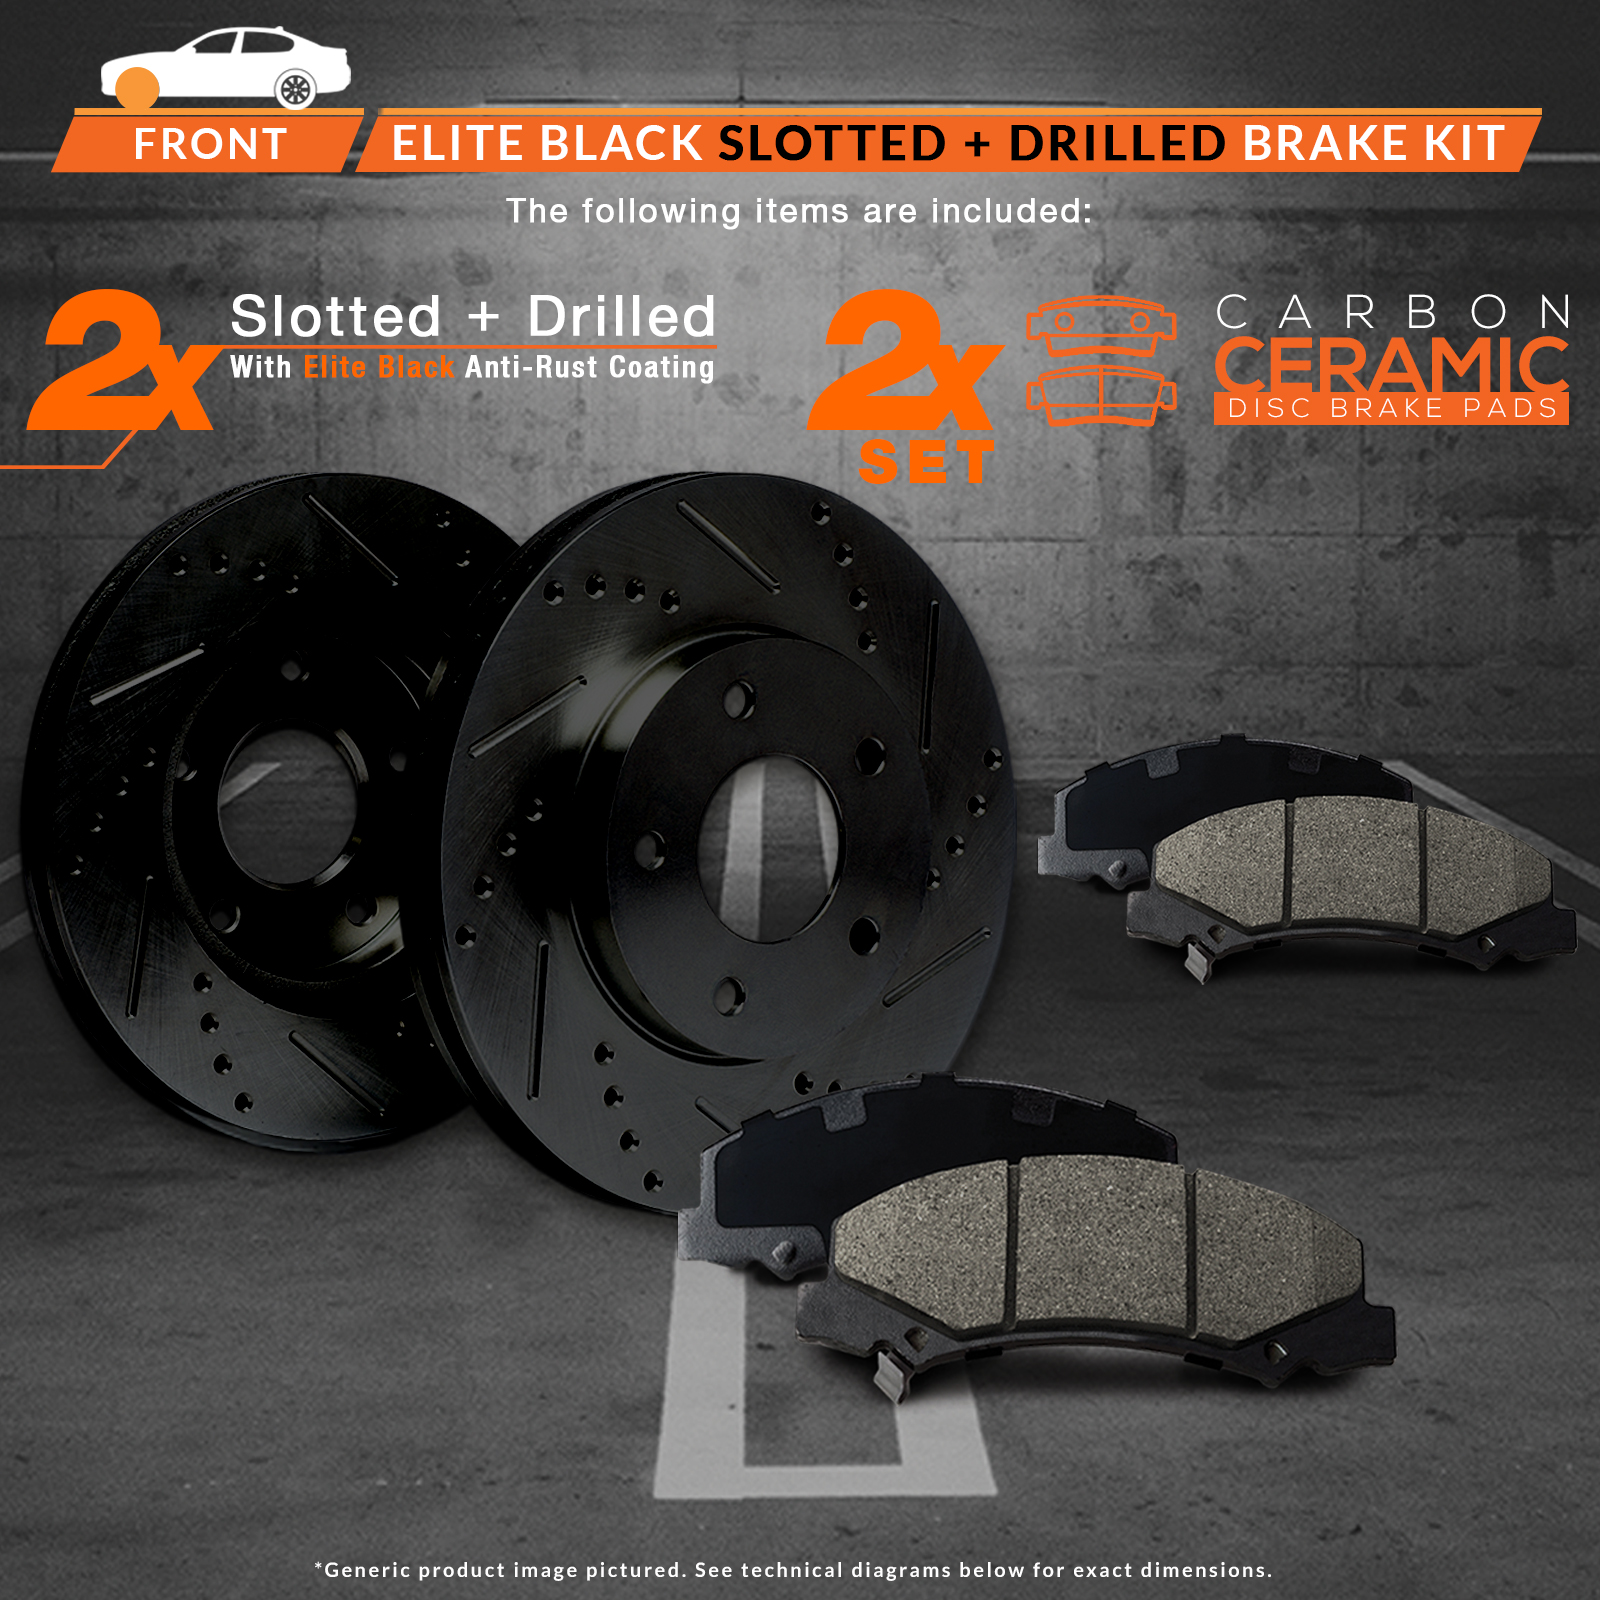 Max Brakes Front /& Rear Elite Brake Kit E-Coated Slotted Drilled Rotors + Ceramic Pads KT100883 Fits: 2014 14 Fits Nissan Murano